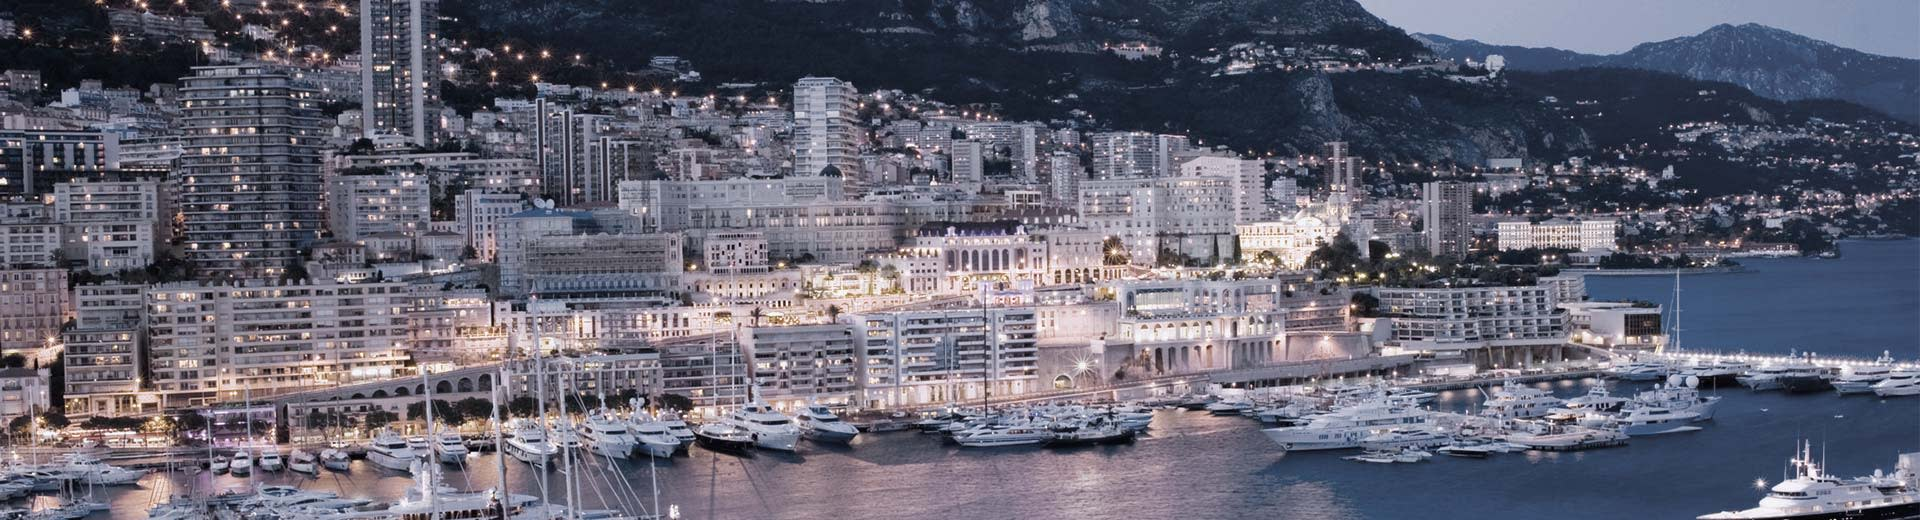 The tightly packed, white buildings of Monaco stretch along the shoreline